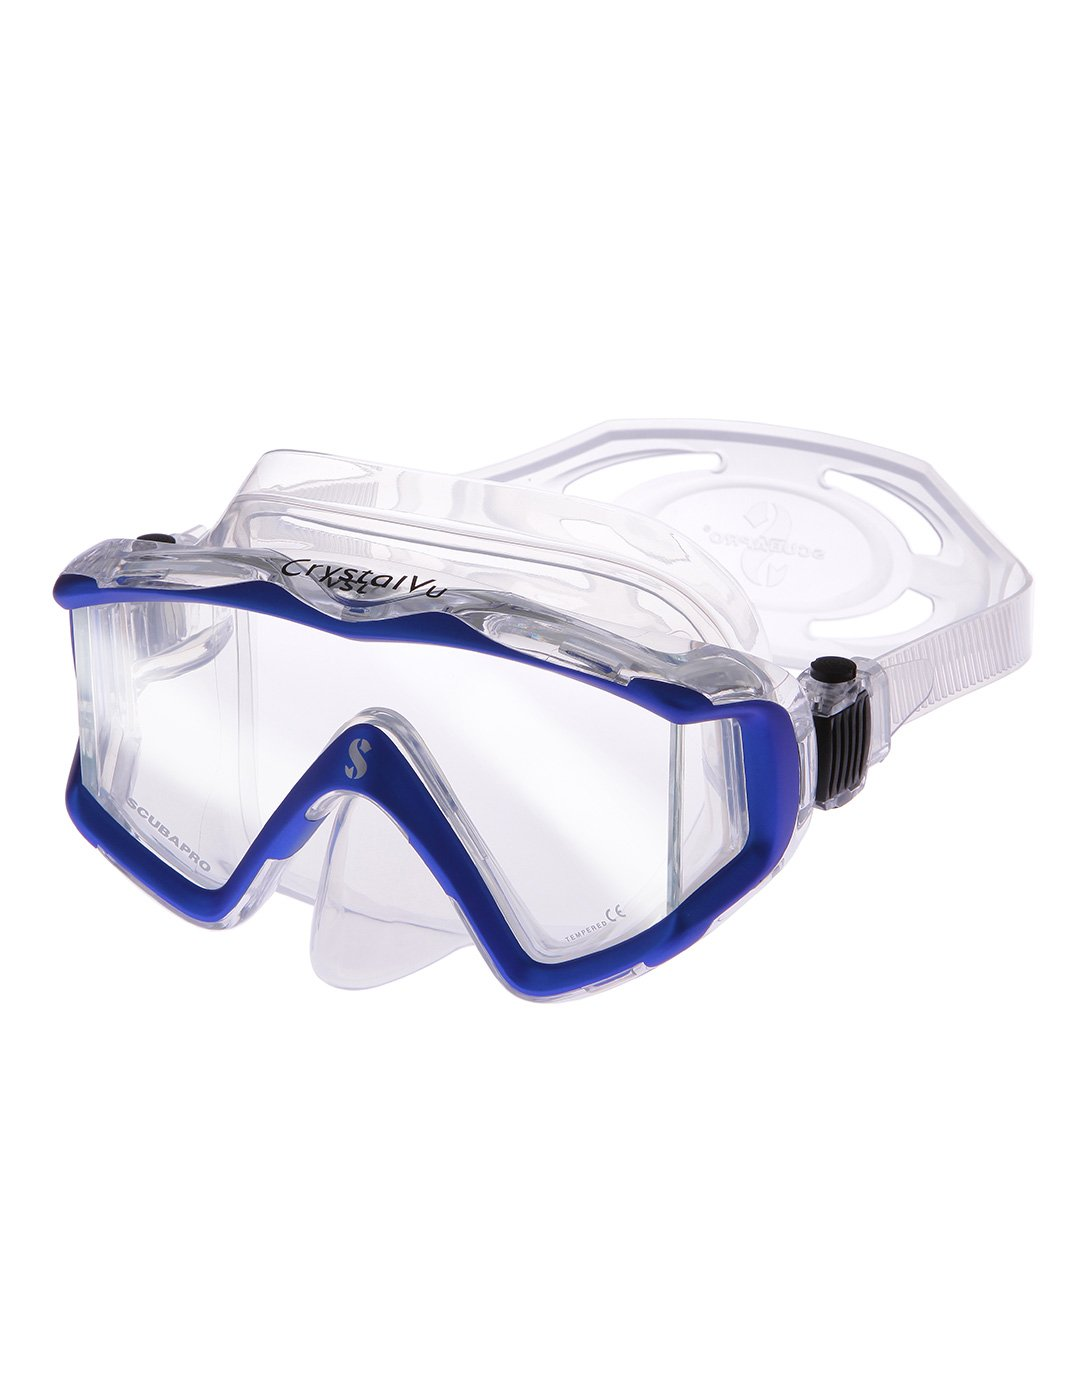 Image of Scubapro Crystal Vu Mask - Metallic Blue/Clear Skirt